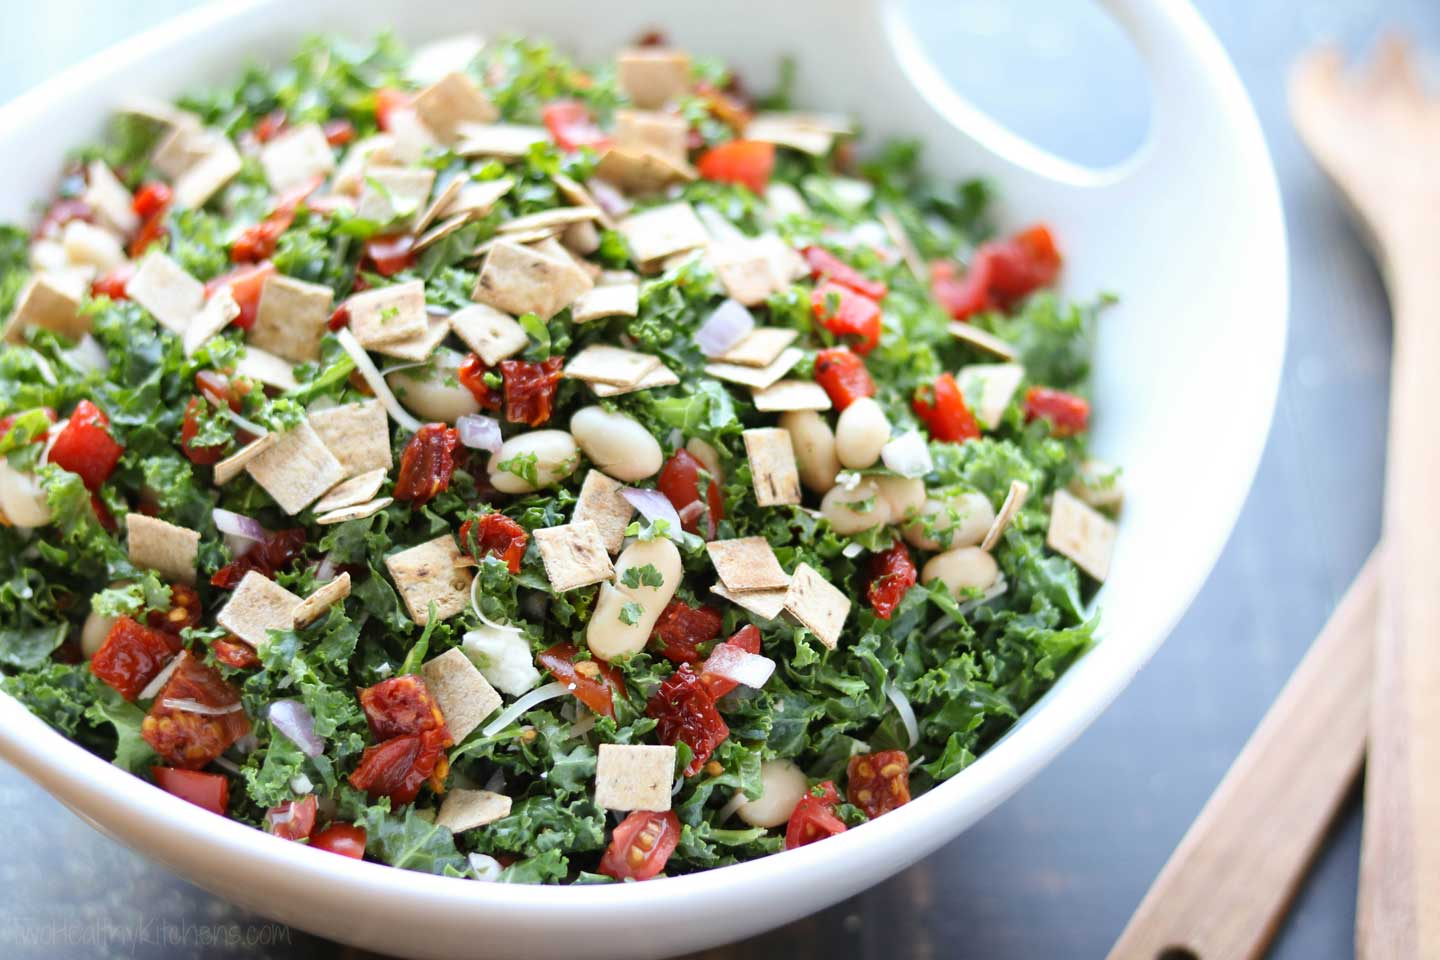 Our simple flatbread croutons add the perfect crunch to this easy kale salad!